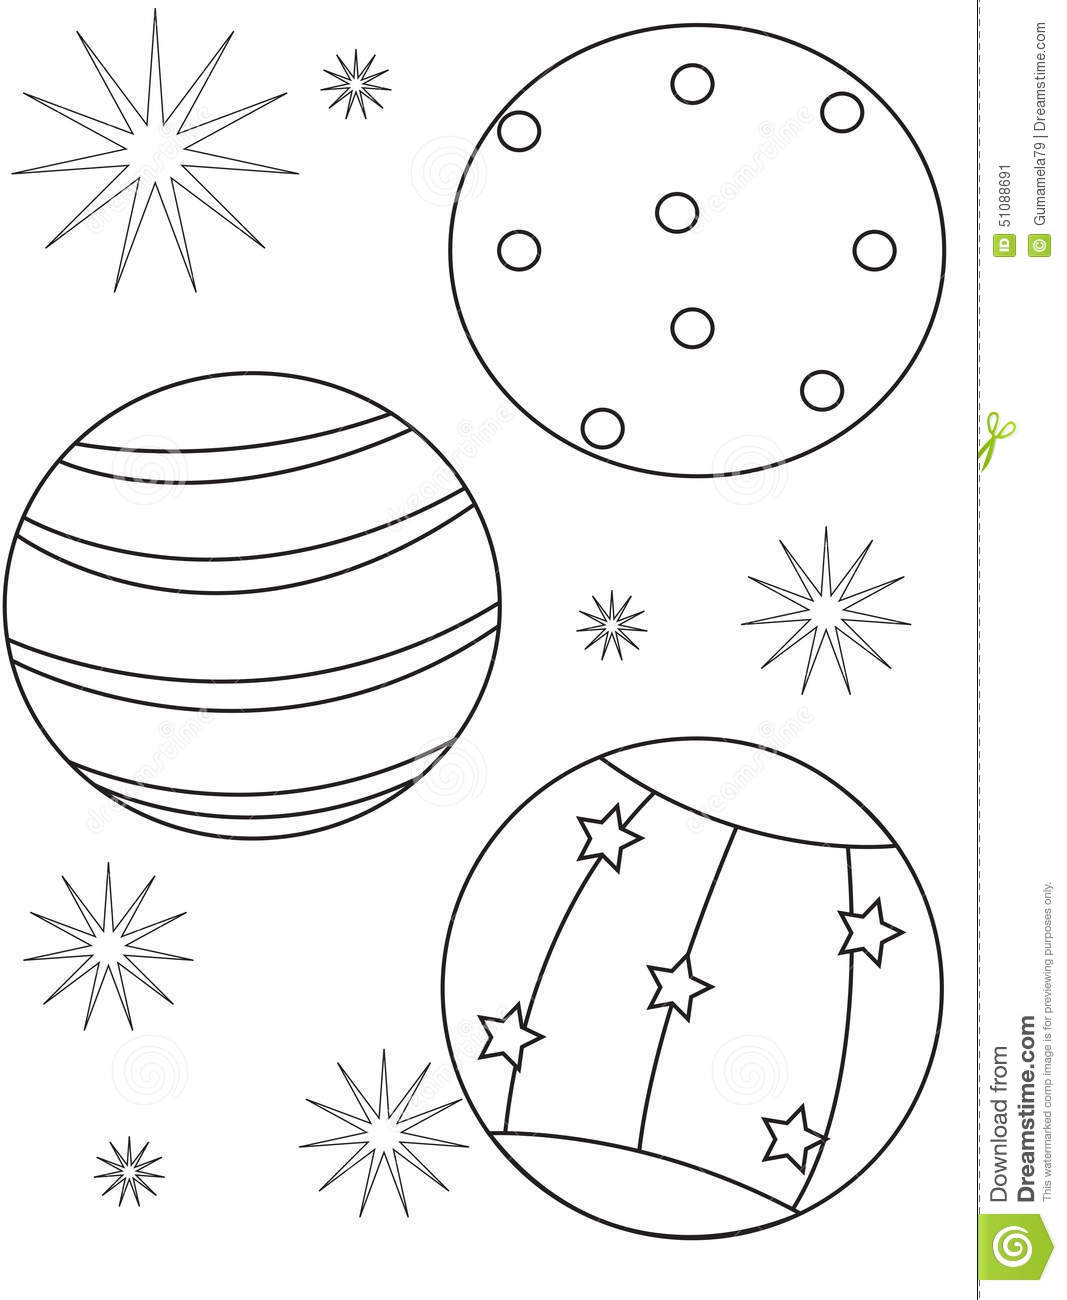 Beach ball coloring page stock illustration. Illustration